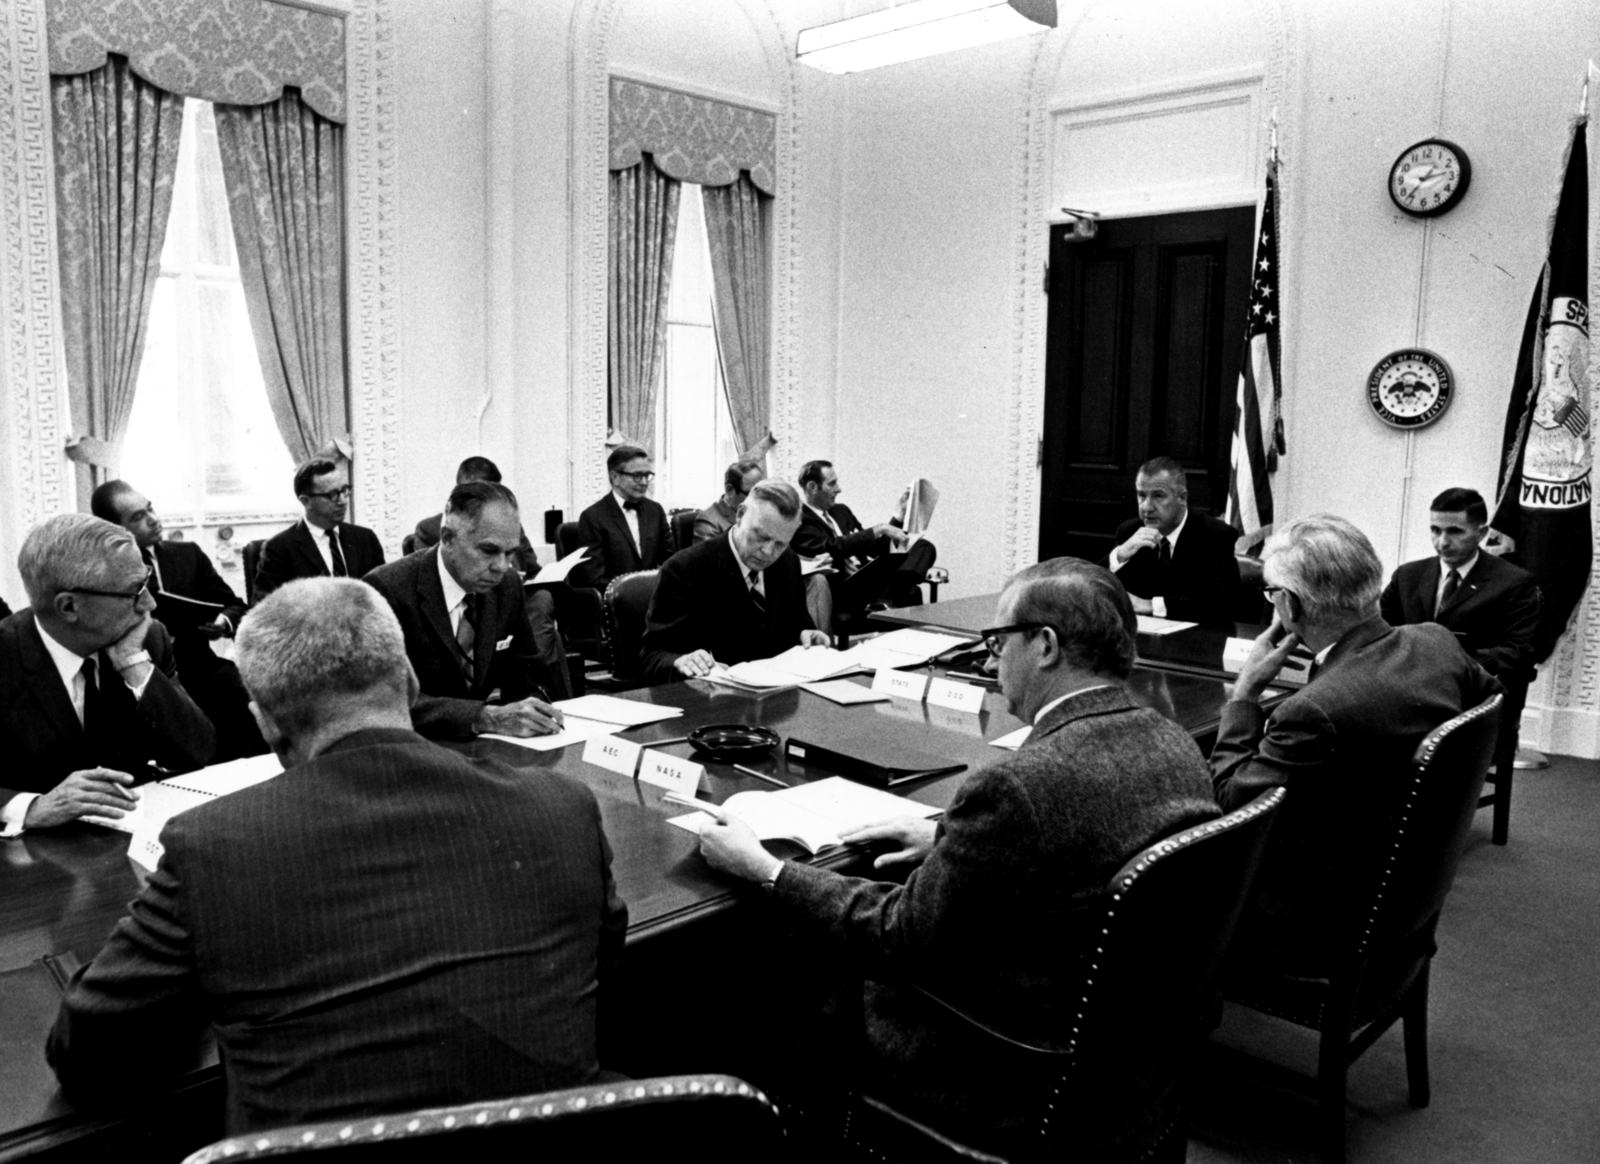 Unknown White House meeting with Glenn Seaborg representing the Atomic Energy Commission (second from left at table), Spiro Agnew at head of table and others representing NASA, the Department of Defense, and the Department of State. Principal Investigator/Project: Analog Conversion Project